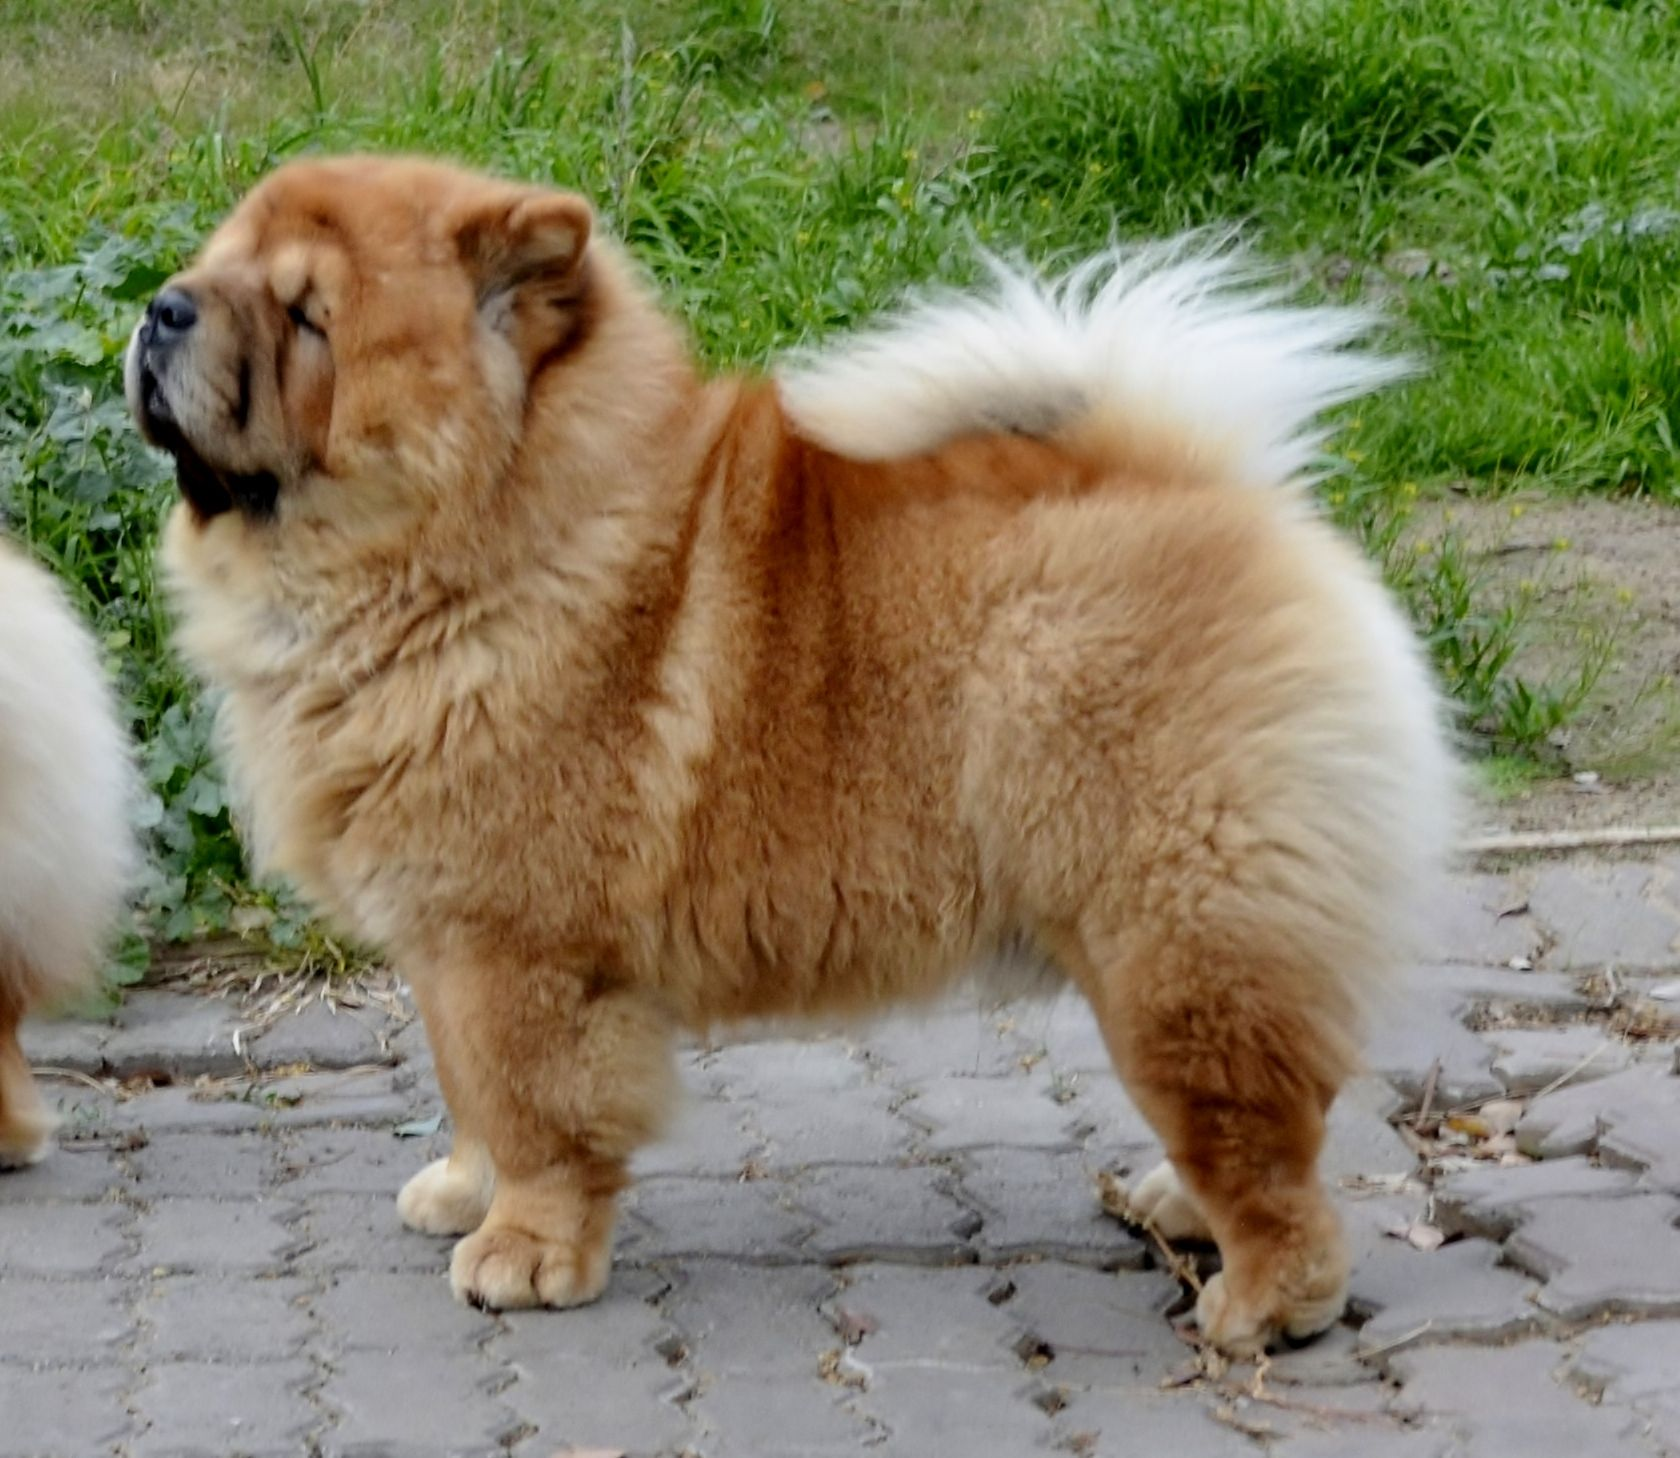 Monty At 4 Years Of Age With Images Chow Chow Dogs Dogs Best